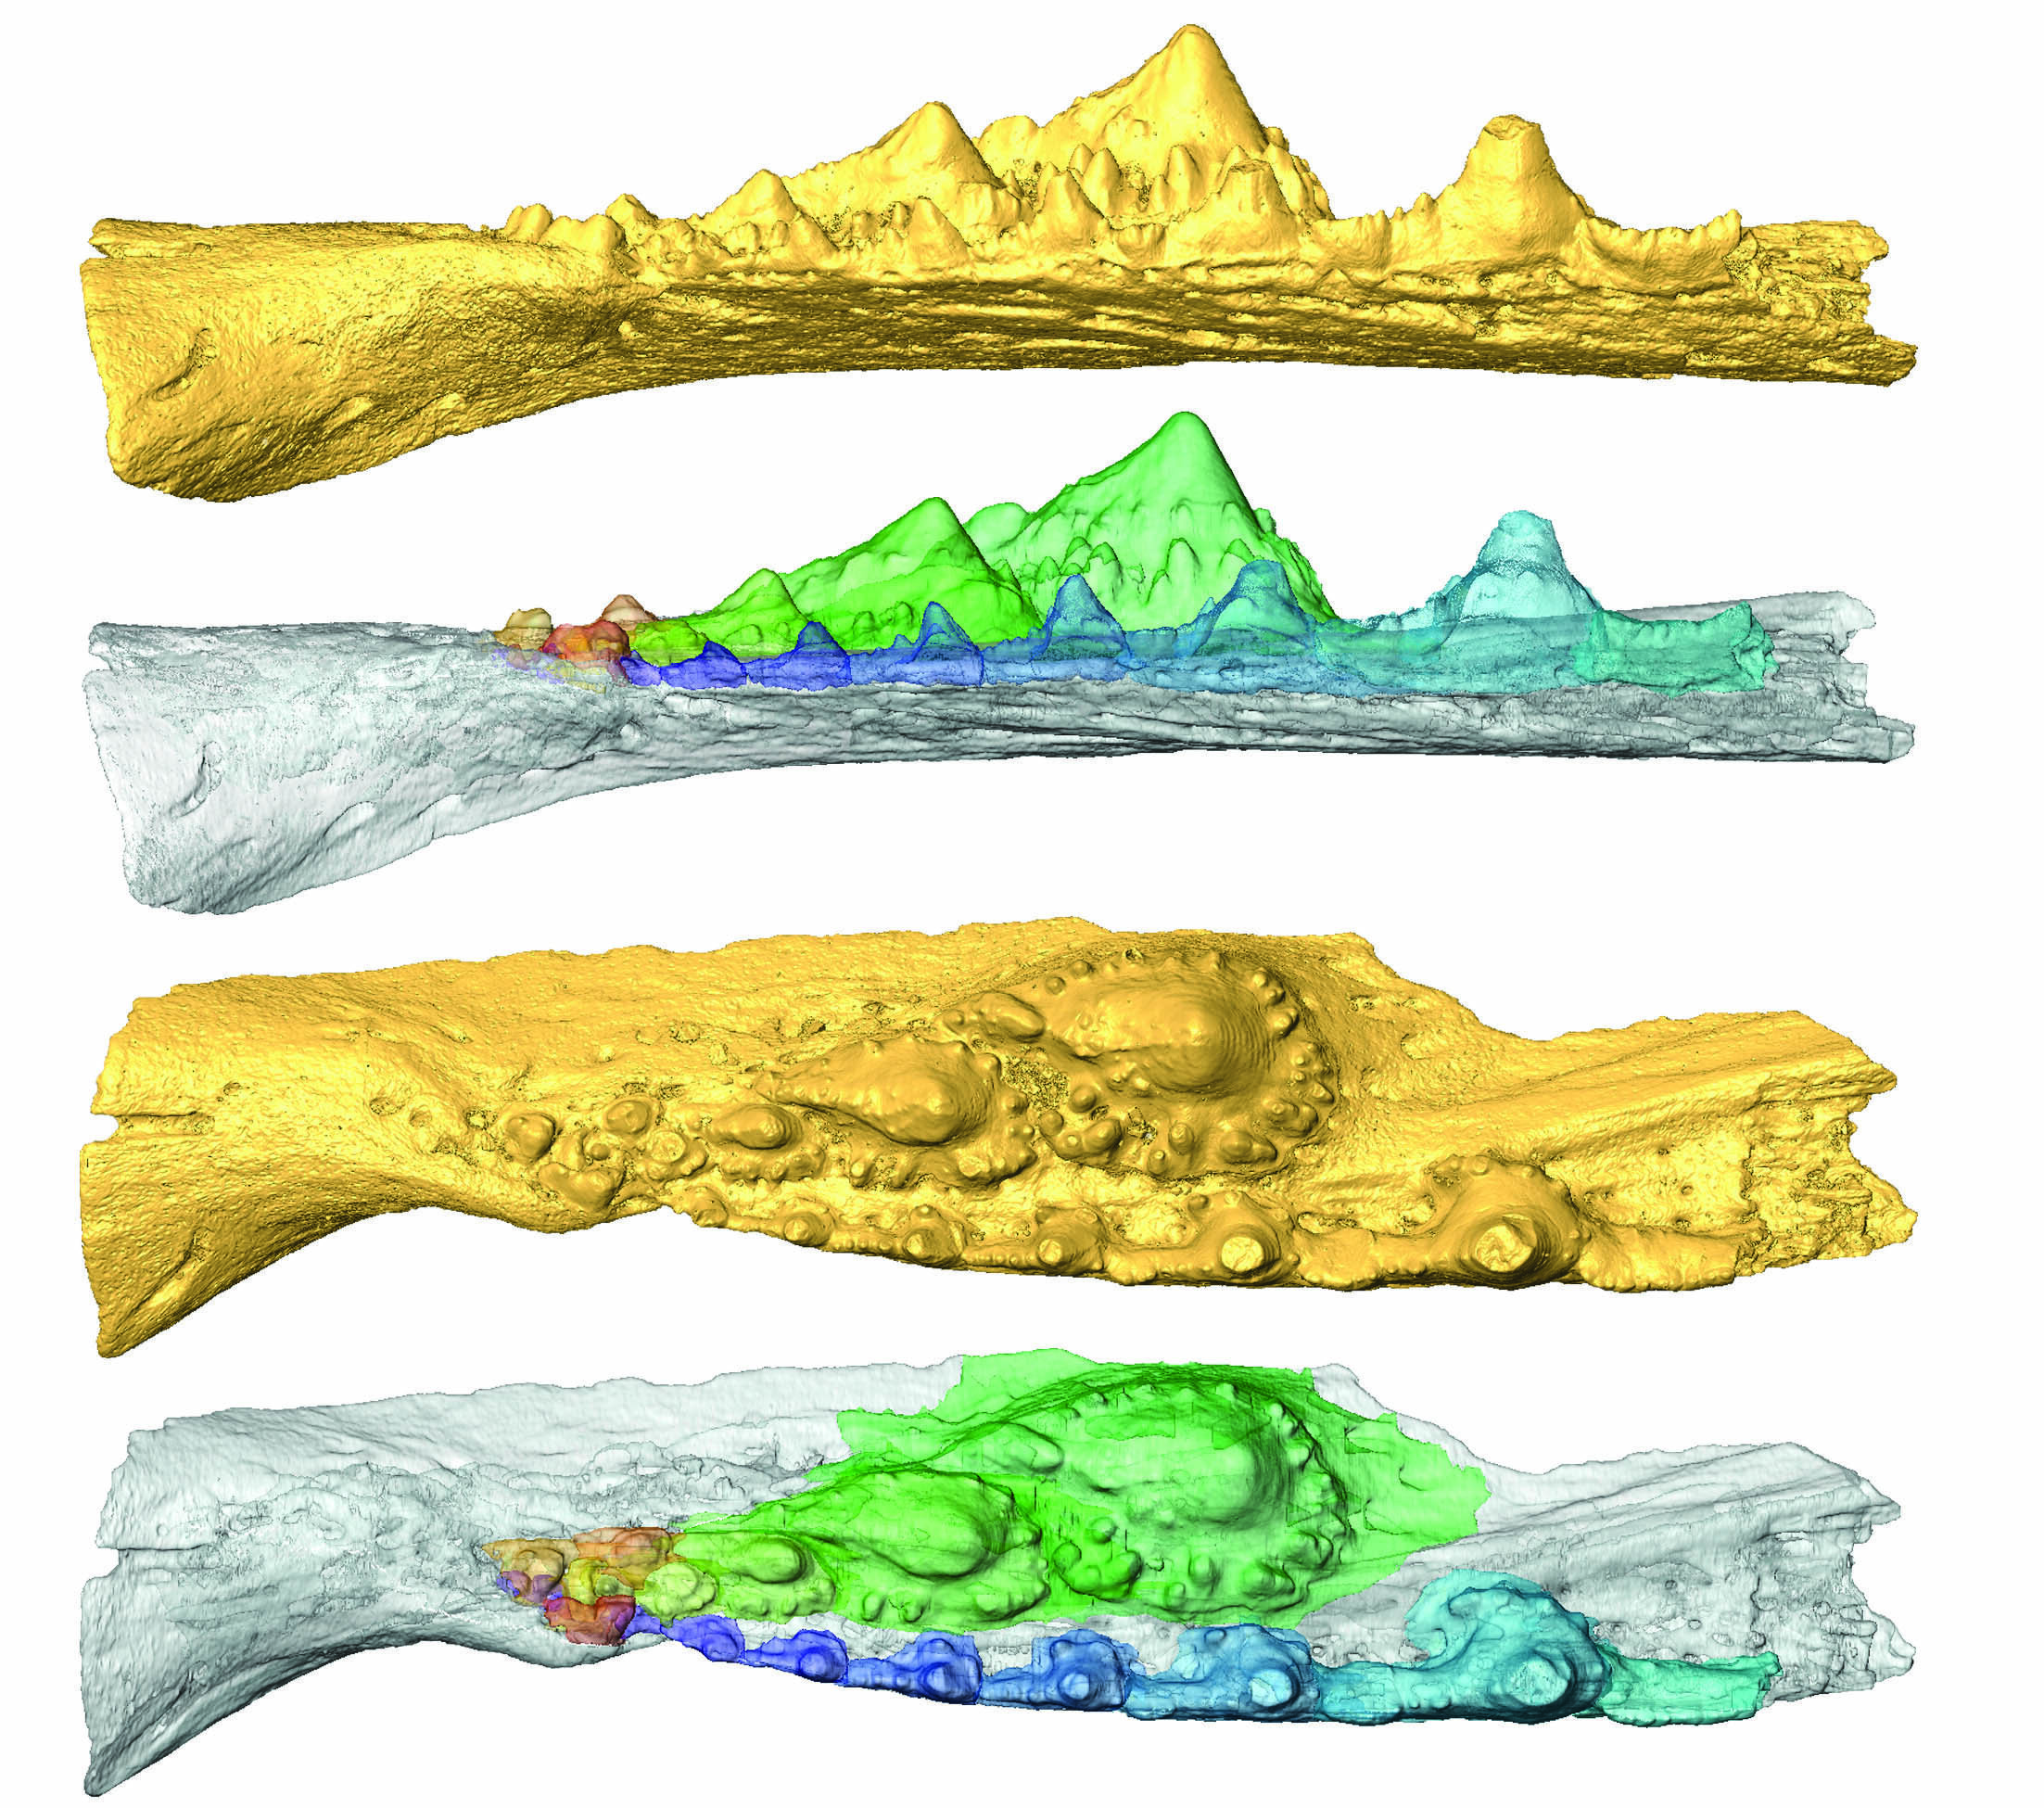 photo of Independent evolutionary origins of vertebrate dentitions, according to latest study image